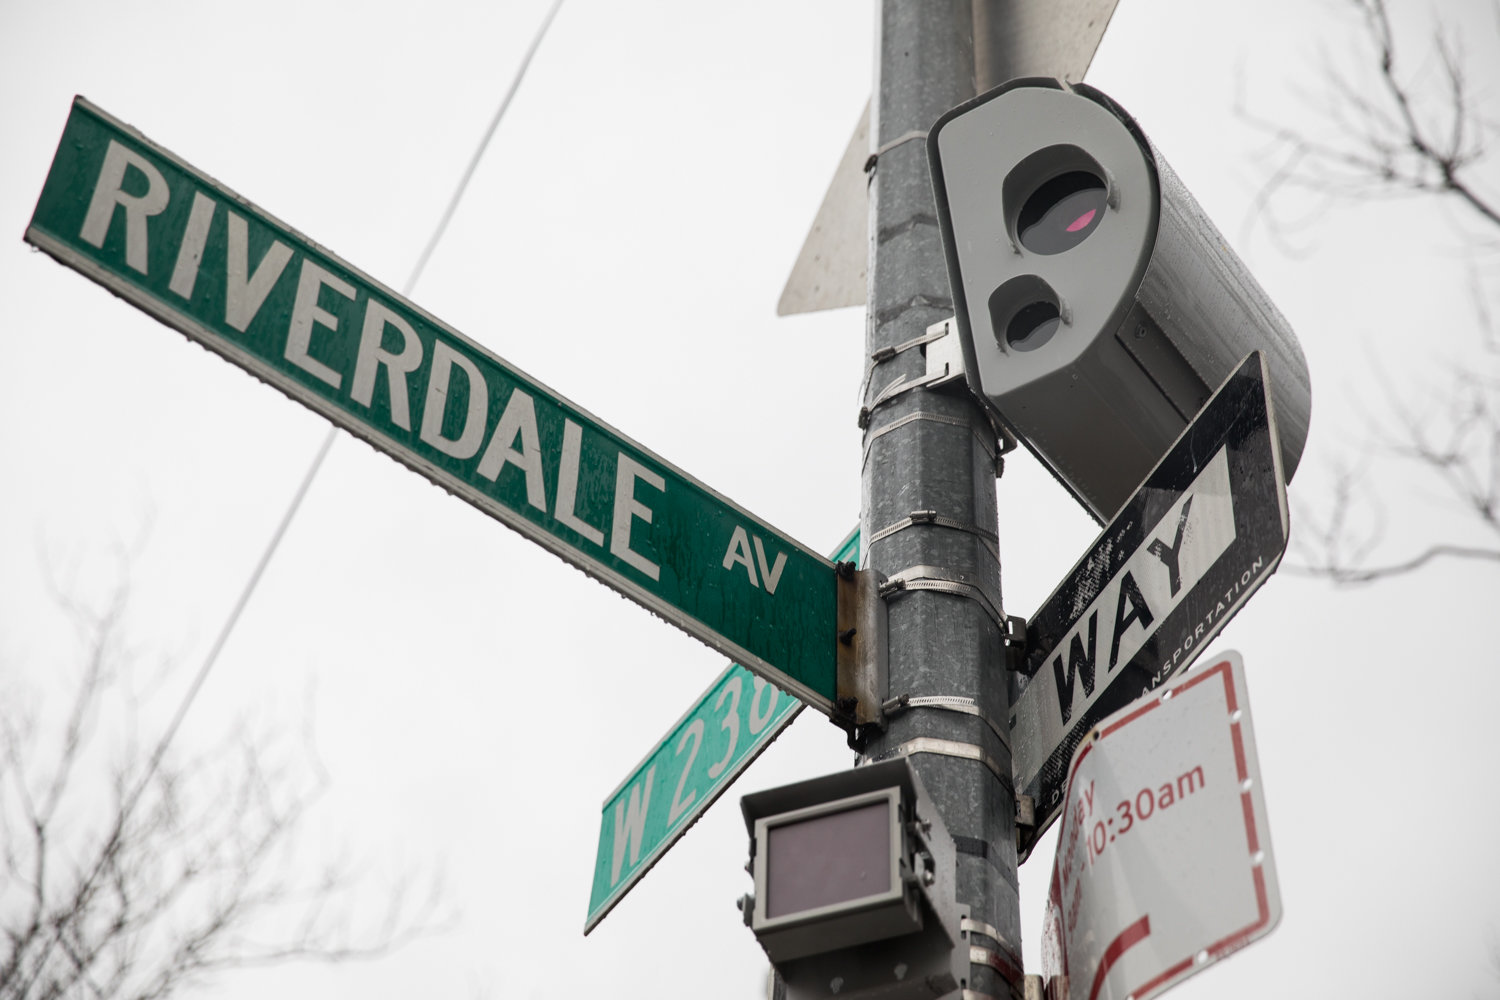 There's a new speed camera in town on the corner of West 238th Street and Riverdale Avenue, which has earned the ire of some drivers through that neighborhood.